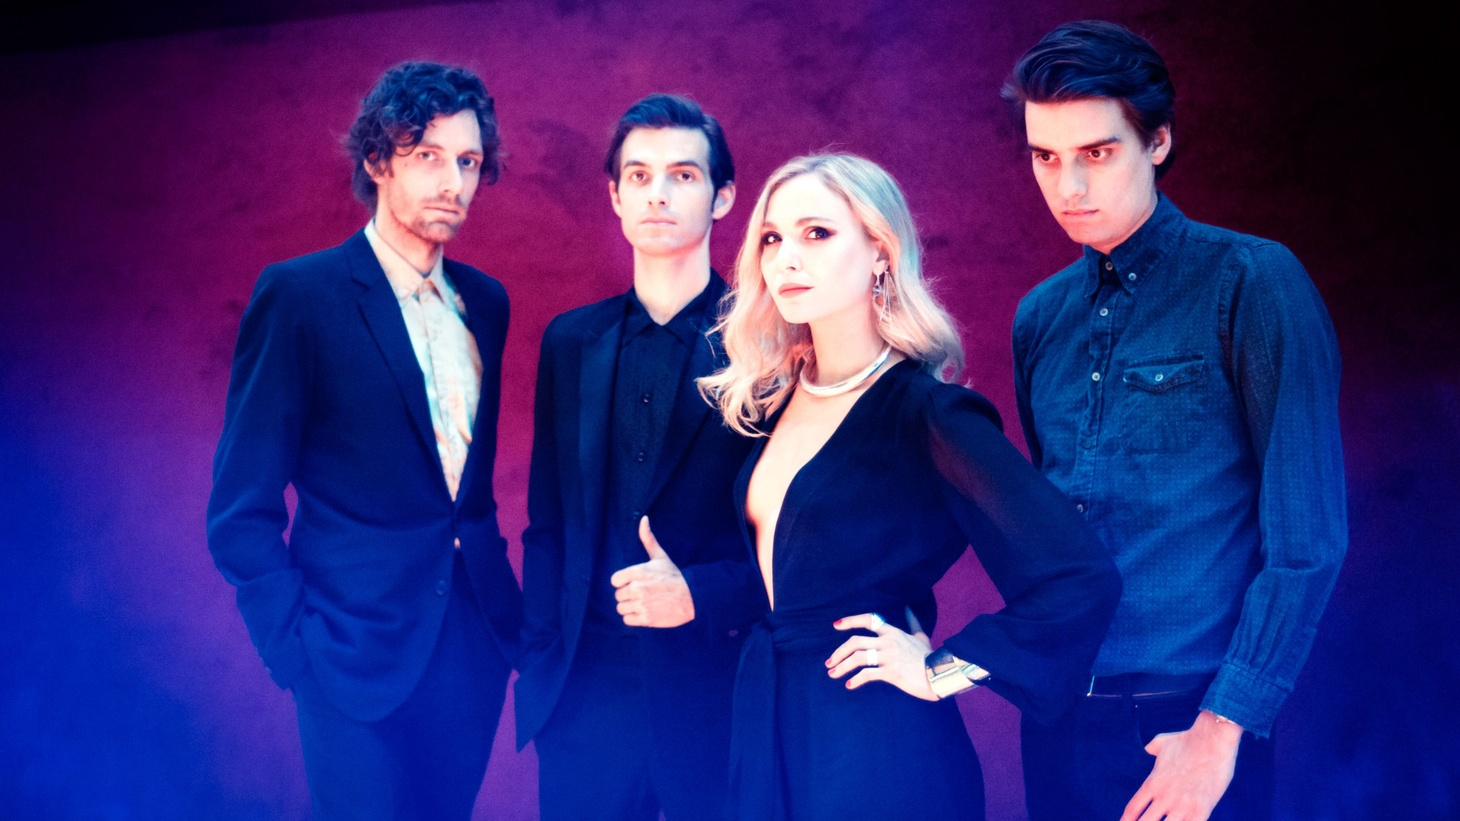 Phases is made up of members of LA bands The Like, Rilo KIley and Phantom Planet. Formed in 2009, they have worked under a different moniker over the years.